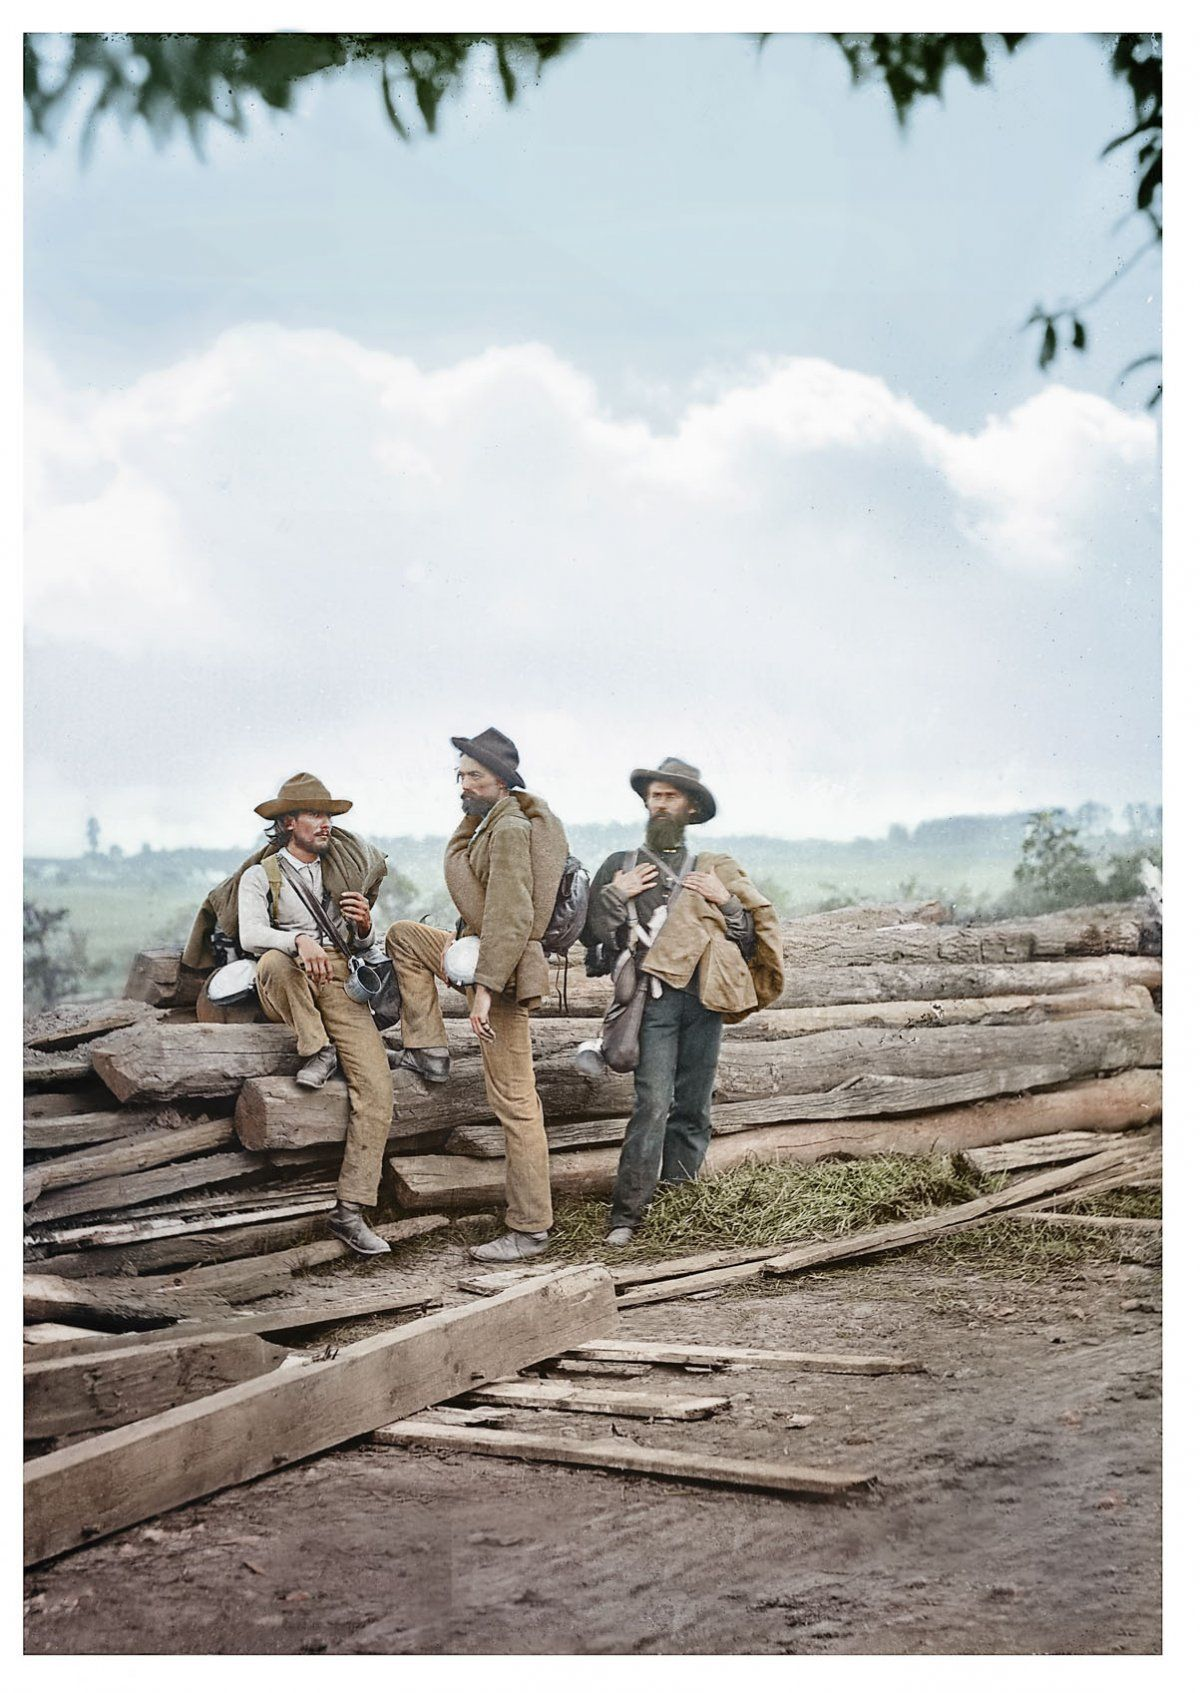 amazing american civil war photos turned into glorious color amazing american civil war photos turned into glorious color this photo by mathew brady the